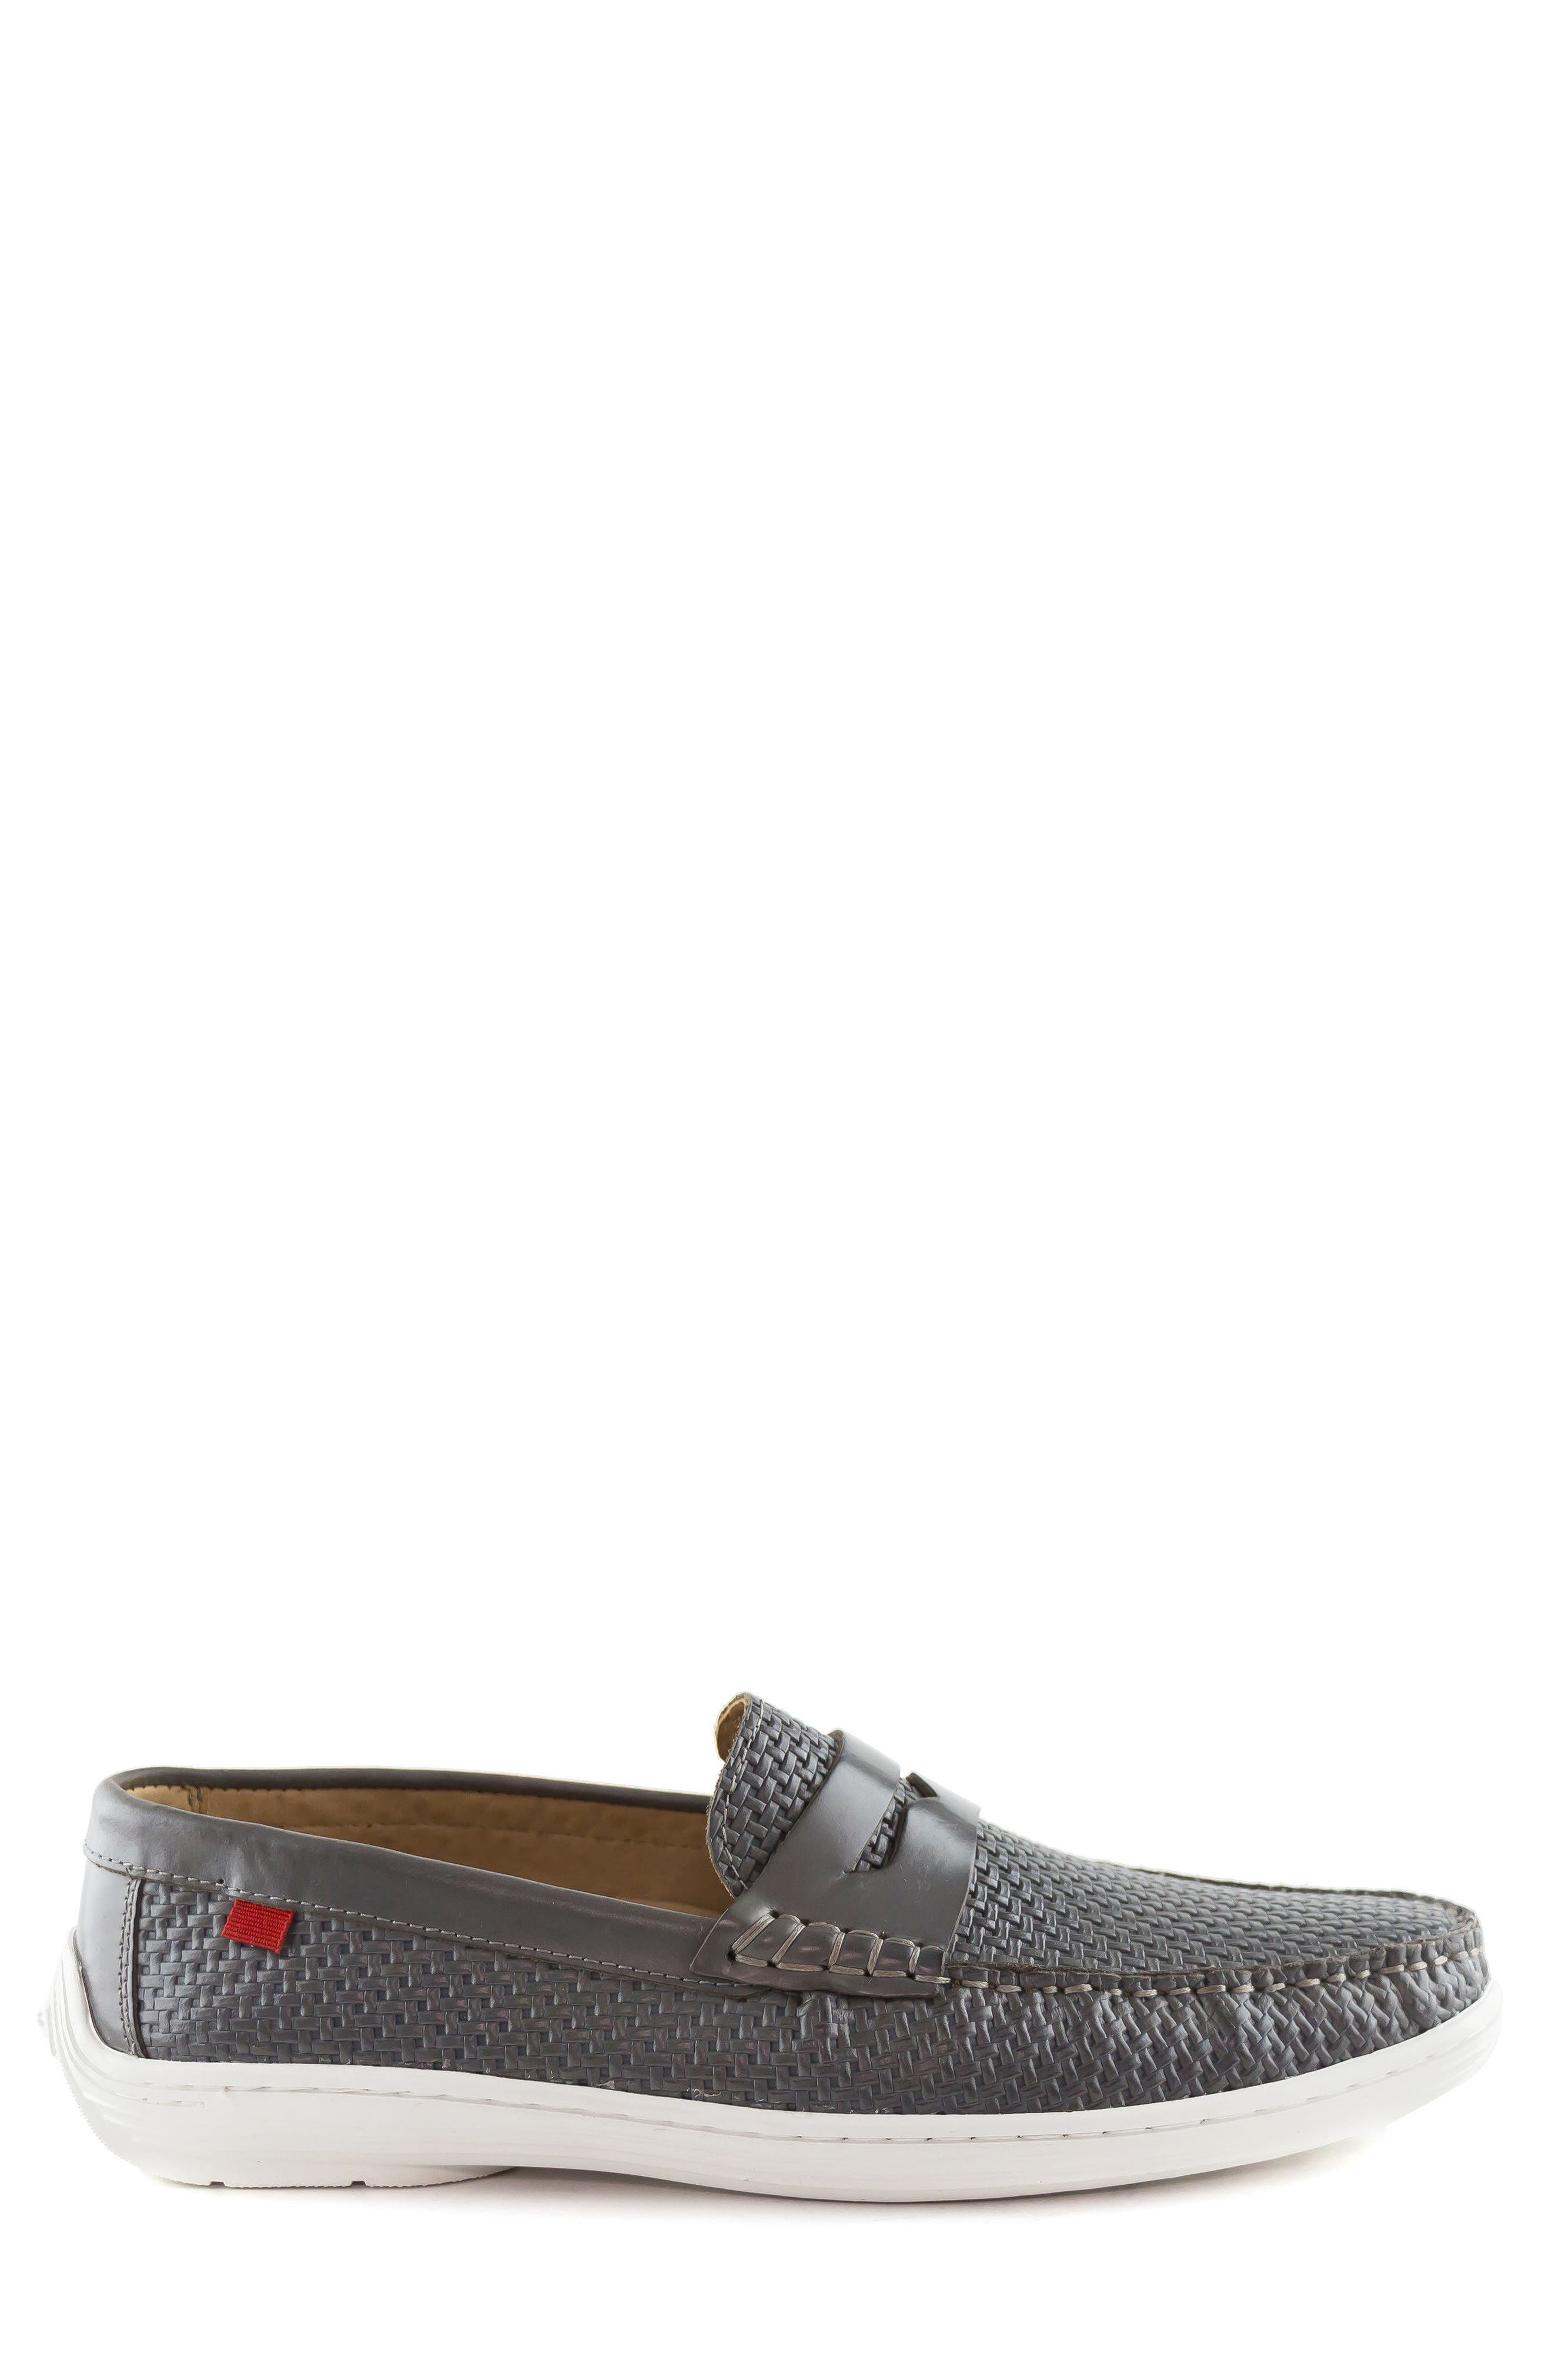 Atlantic Penny Loafer,                             Alternate thumbnail 17, color,